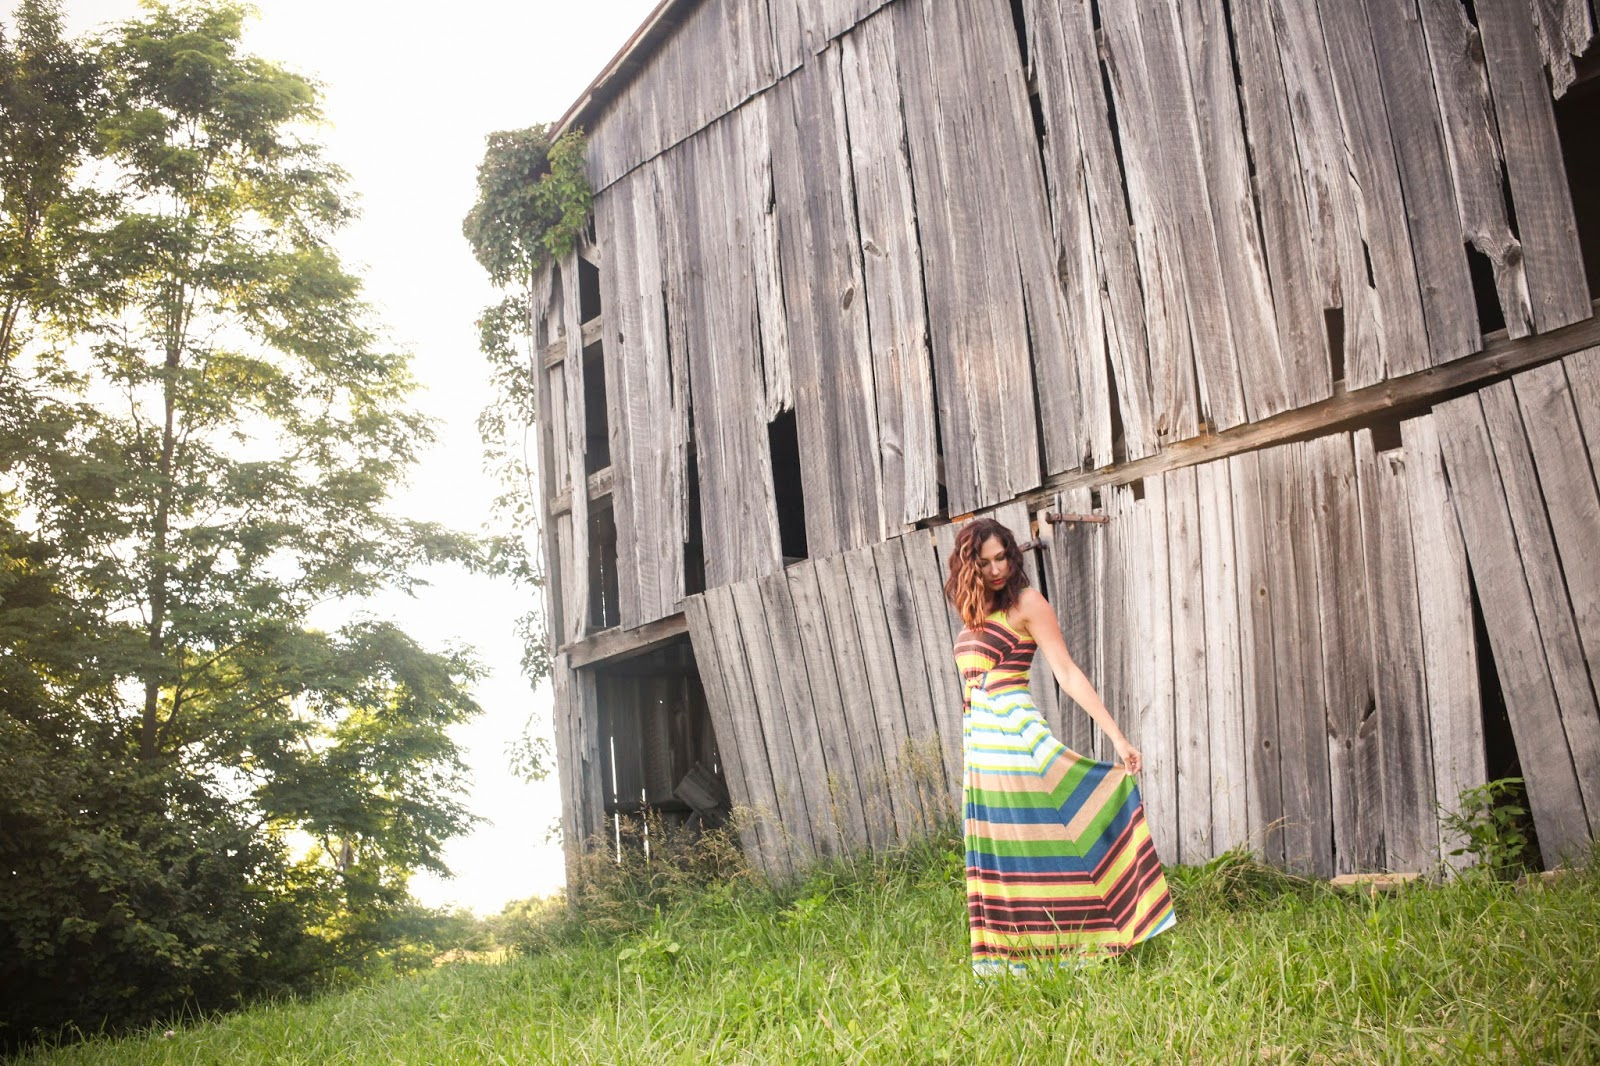 Amy West in Maxi Dress outside of old barn